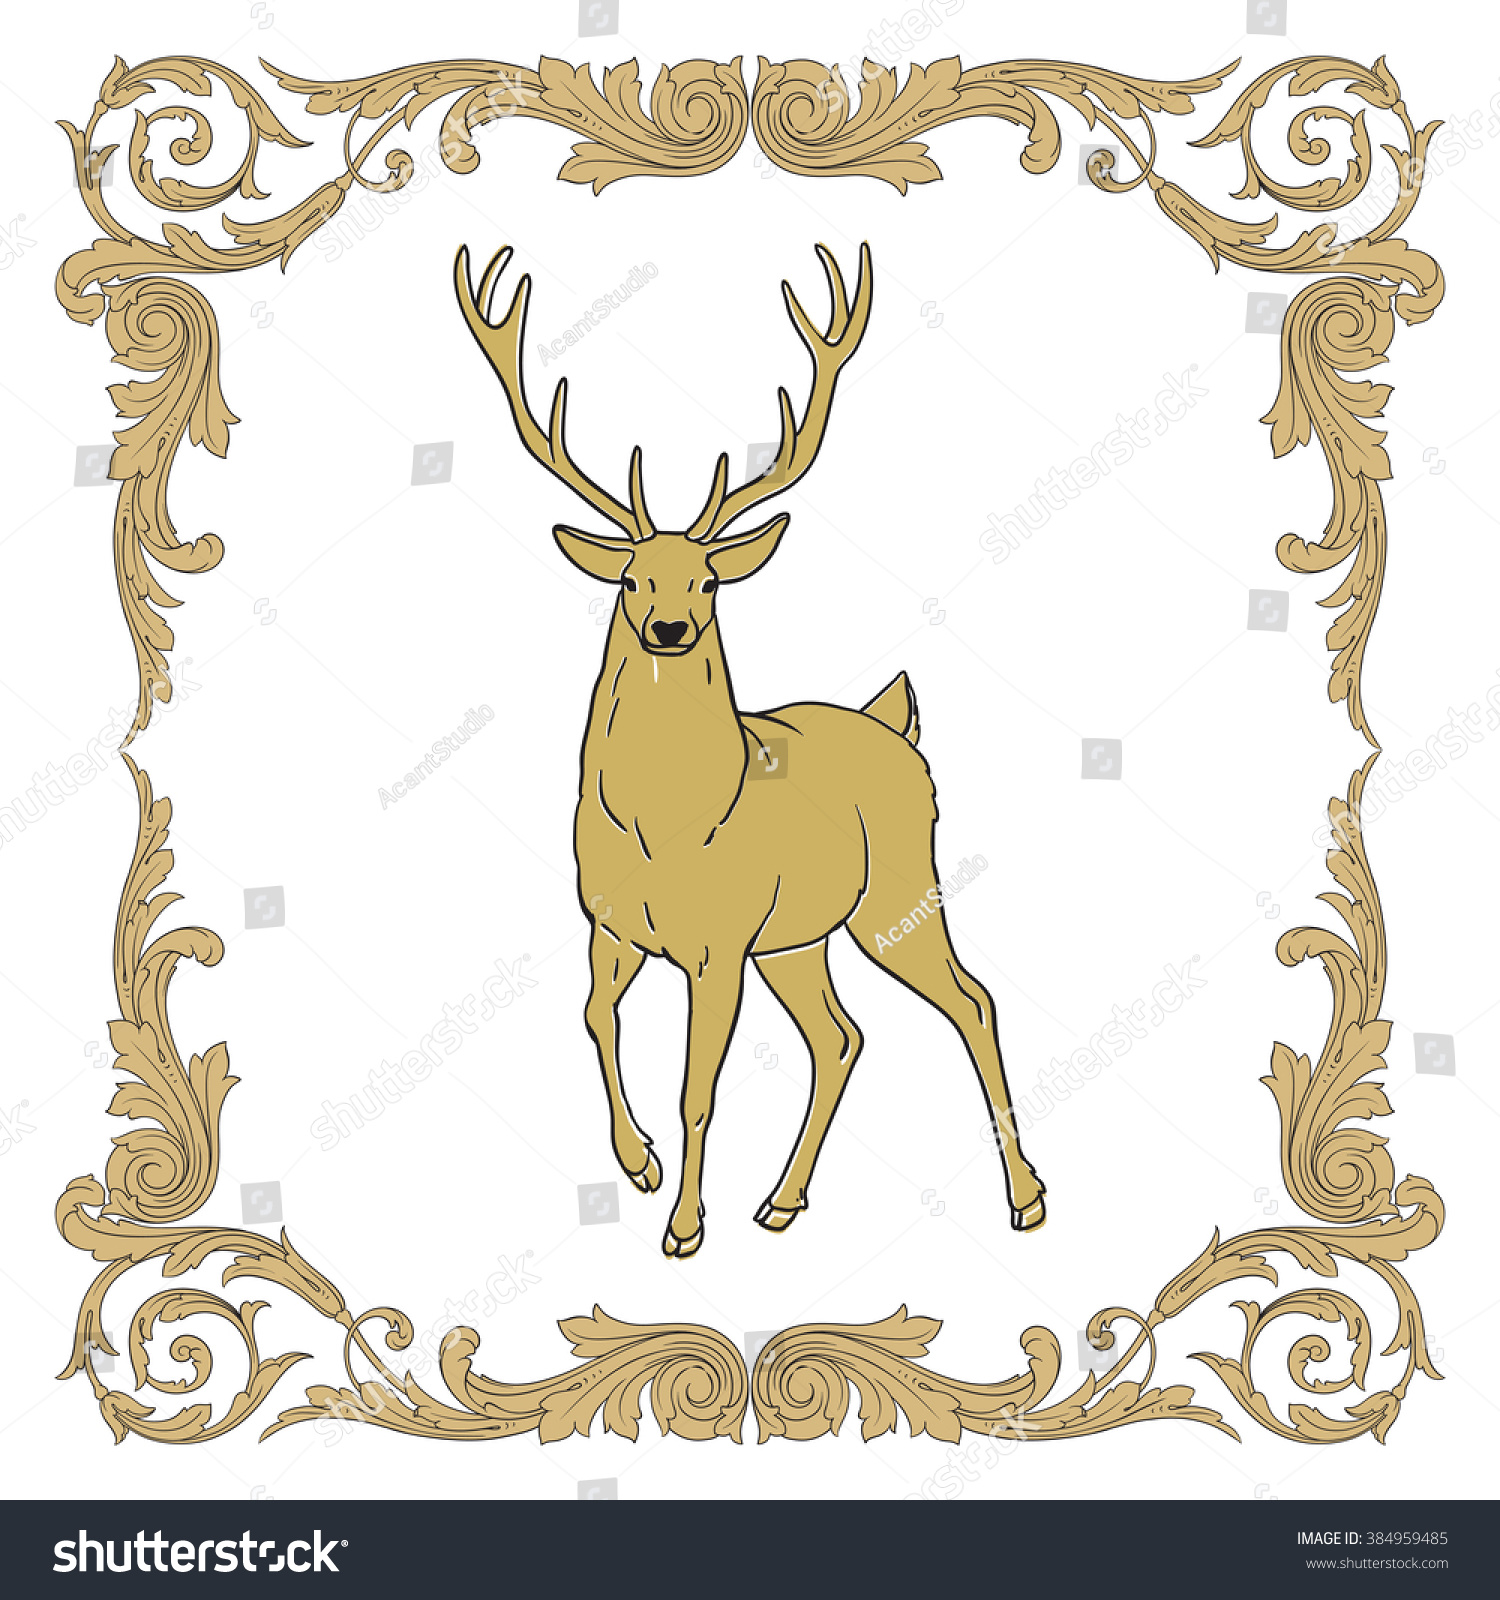 Deer Silhouette Icon Deer Silhouette Web Stock Photo (Photo, Vector ...